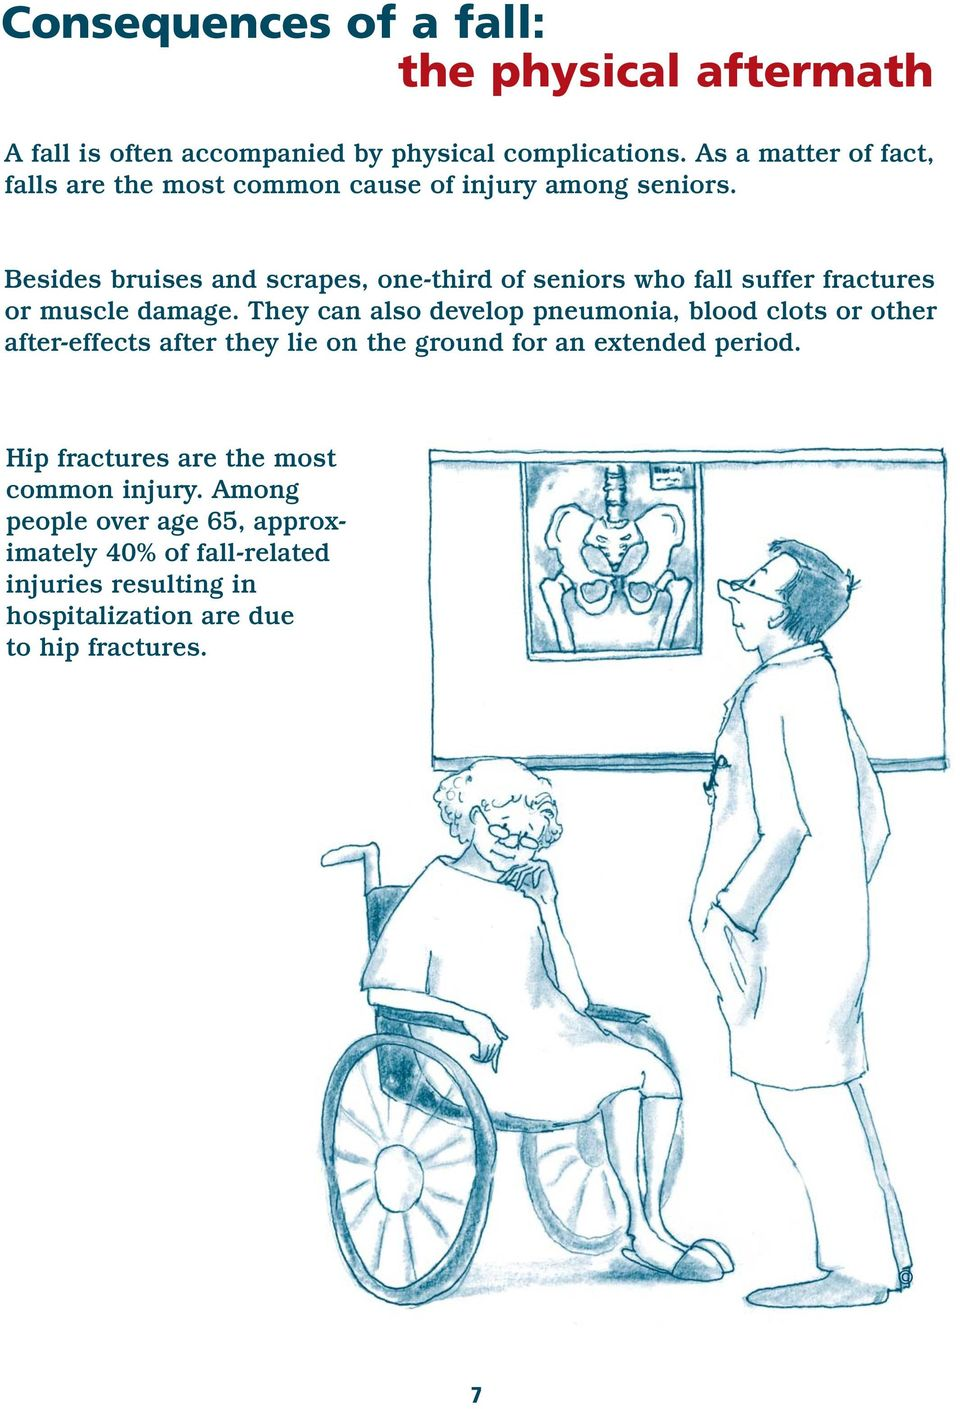 Besides bruises and scrapes, one-third of seniors who fall suffer fractures or muscle damage.